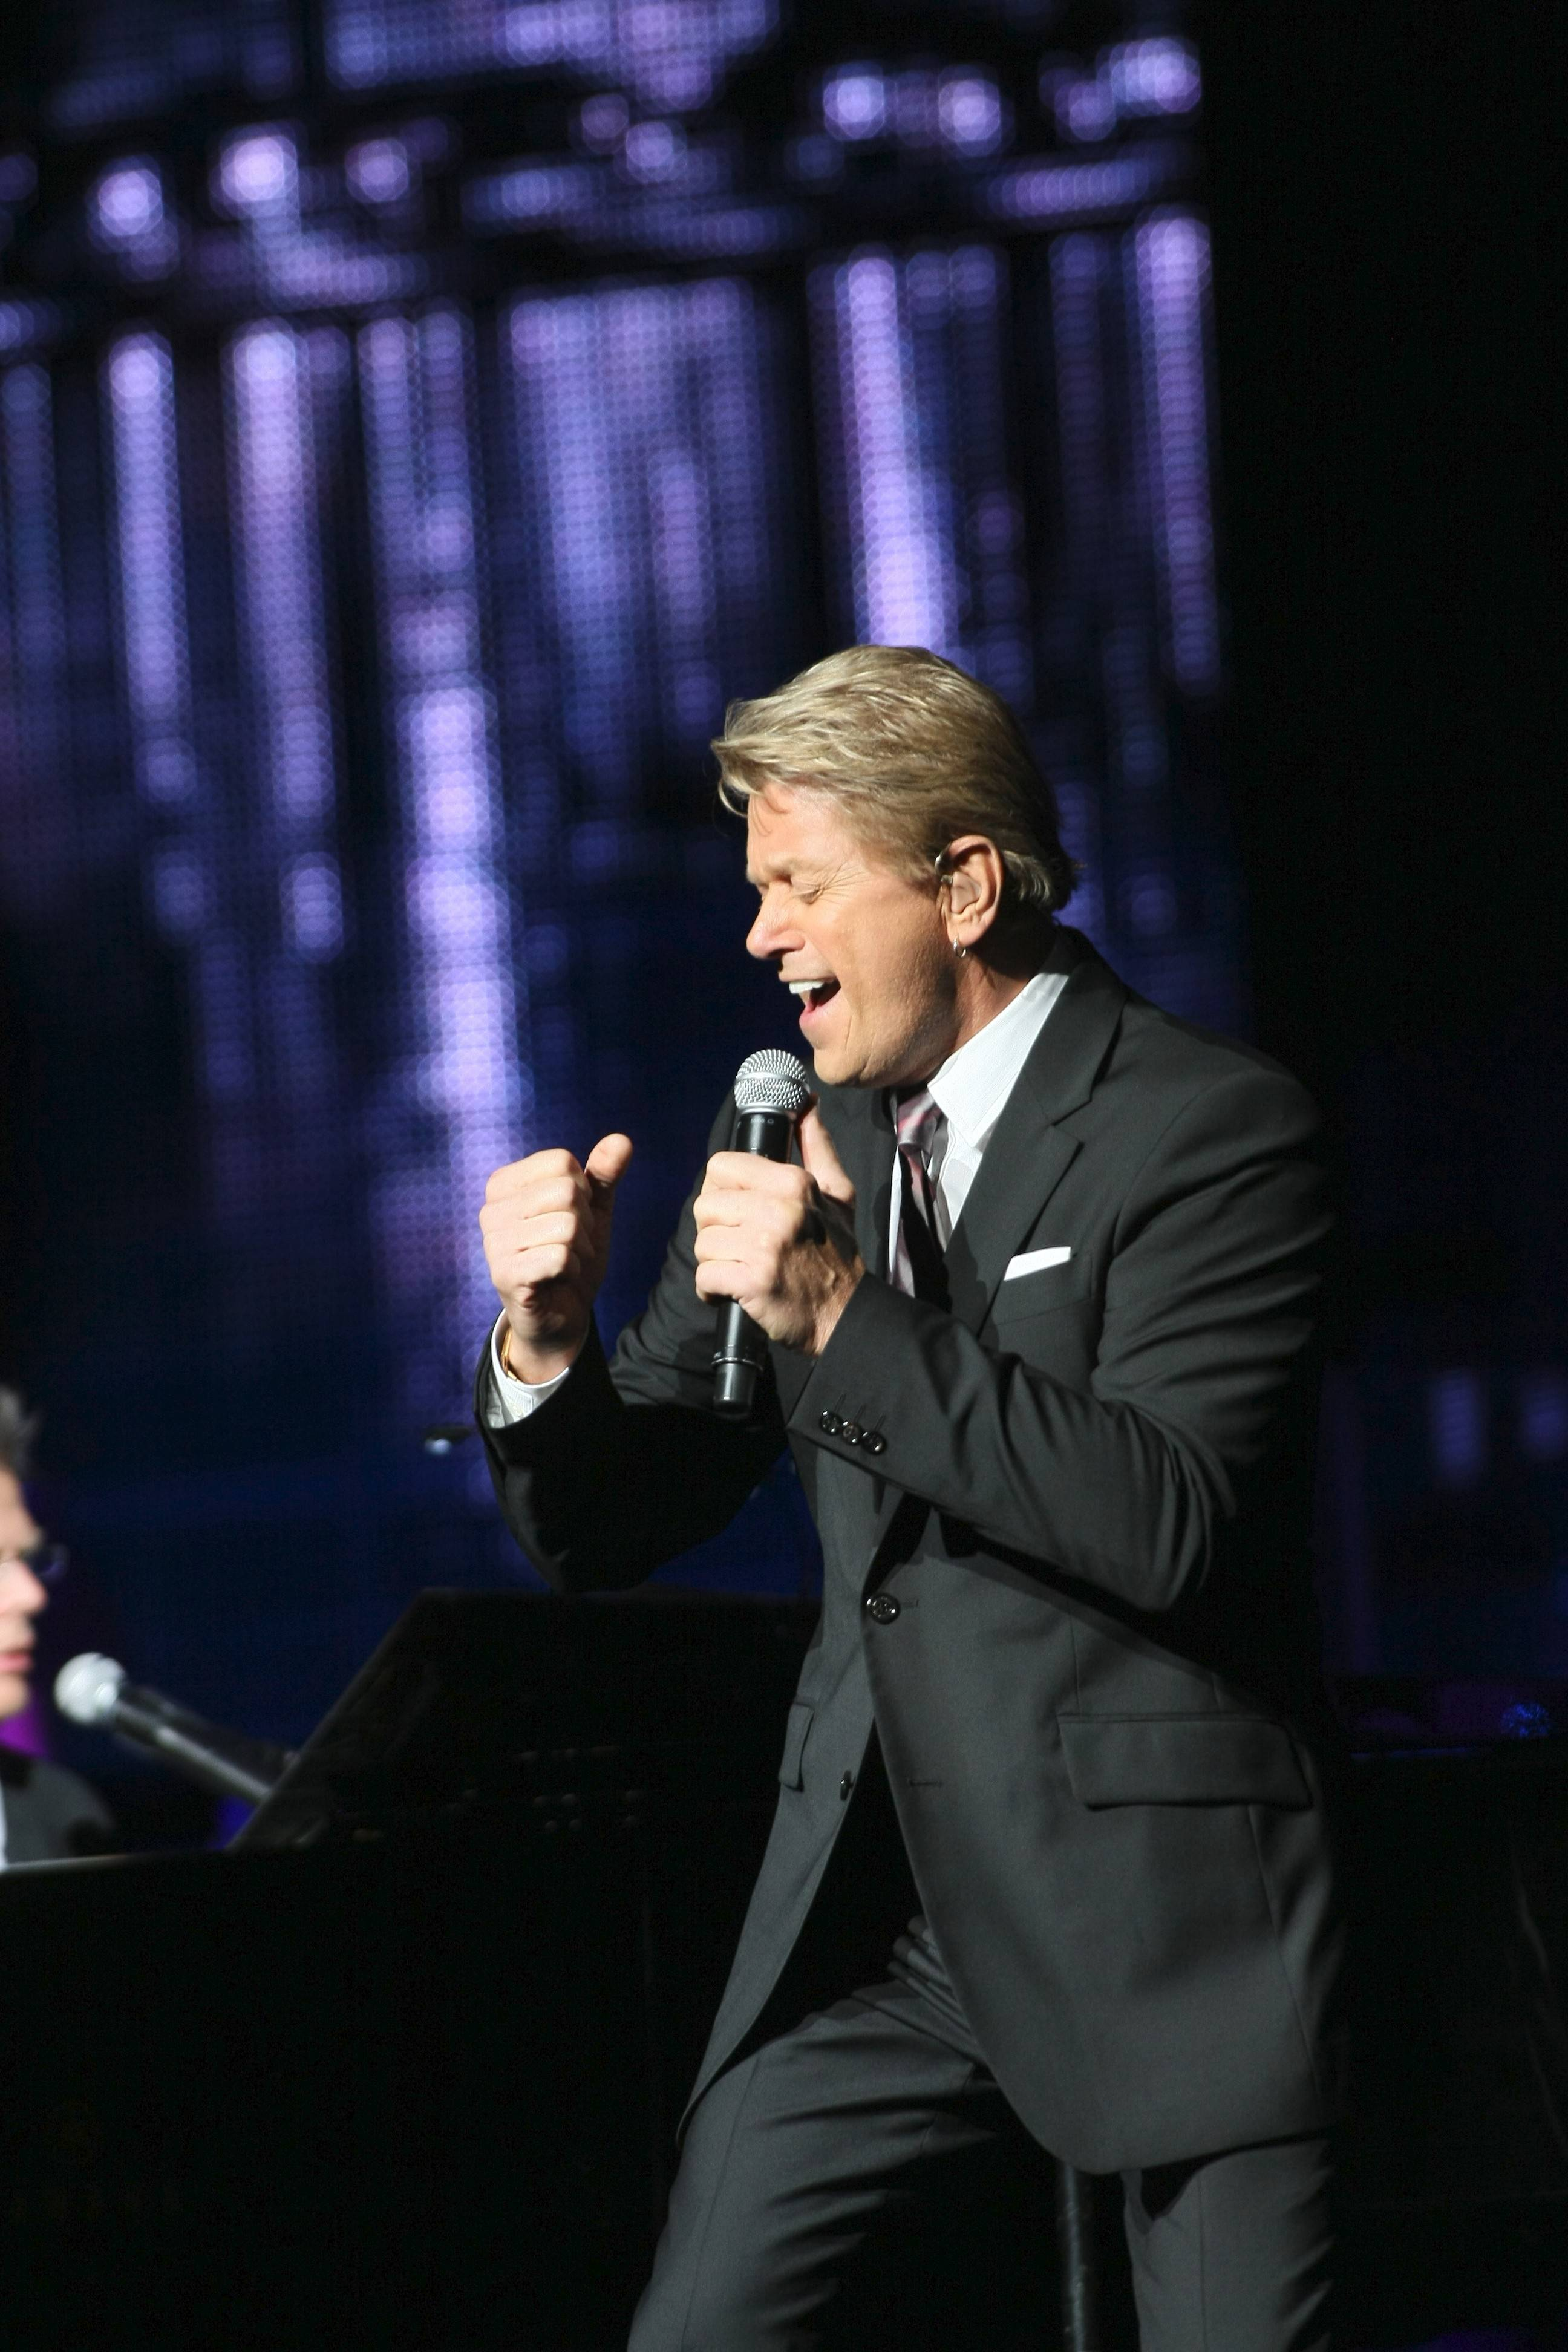 Peter Cetera, Air Supply coming to Genesee